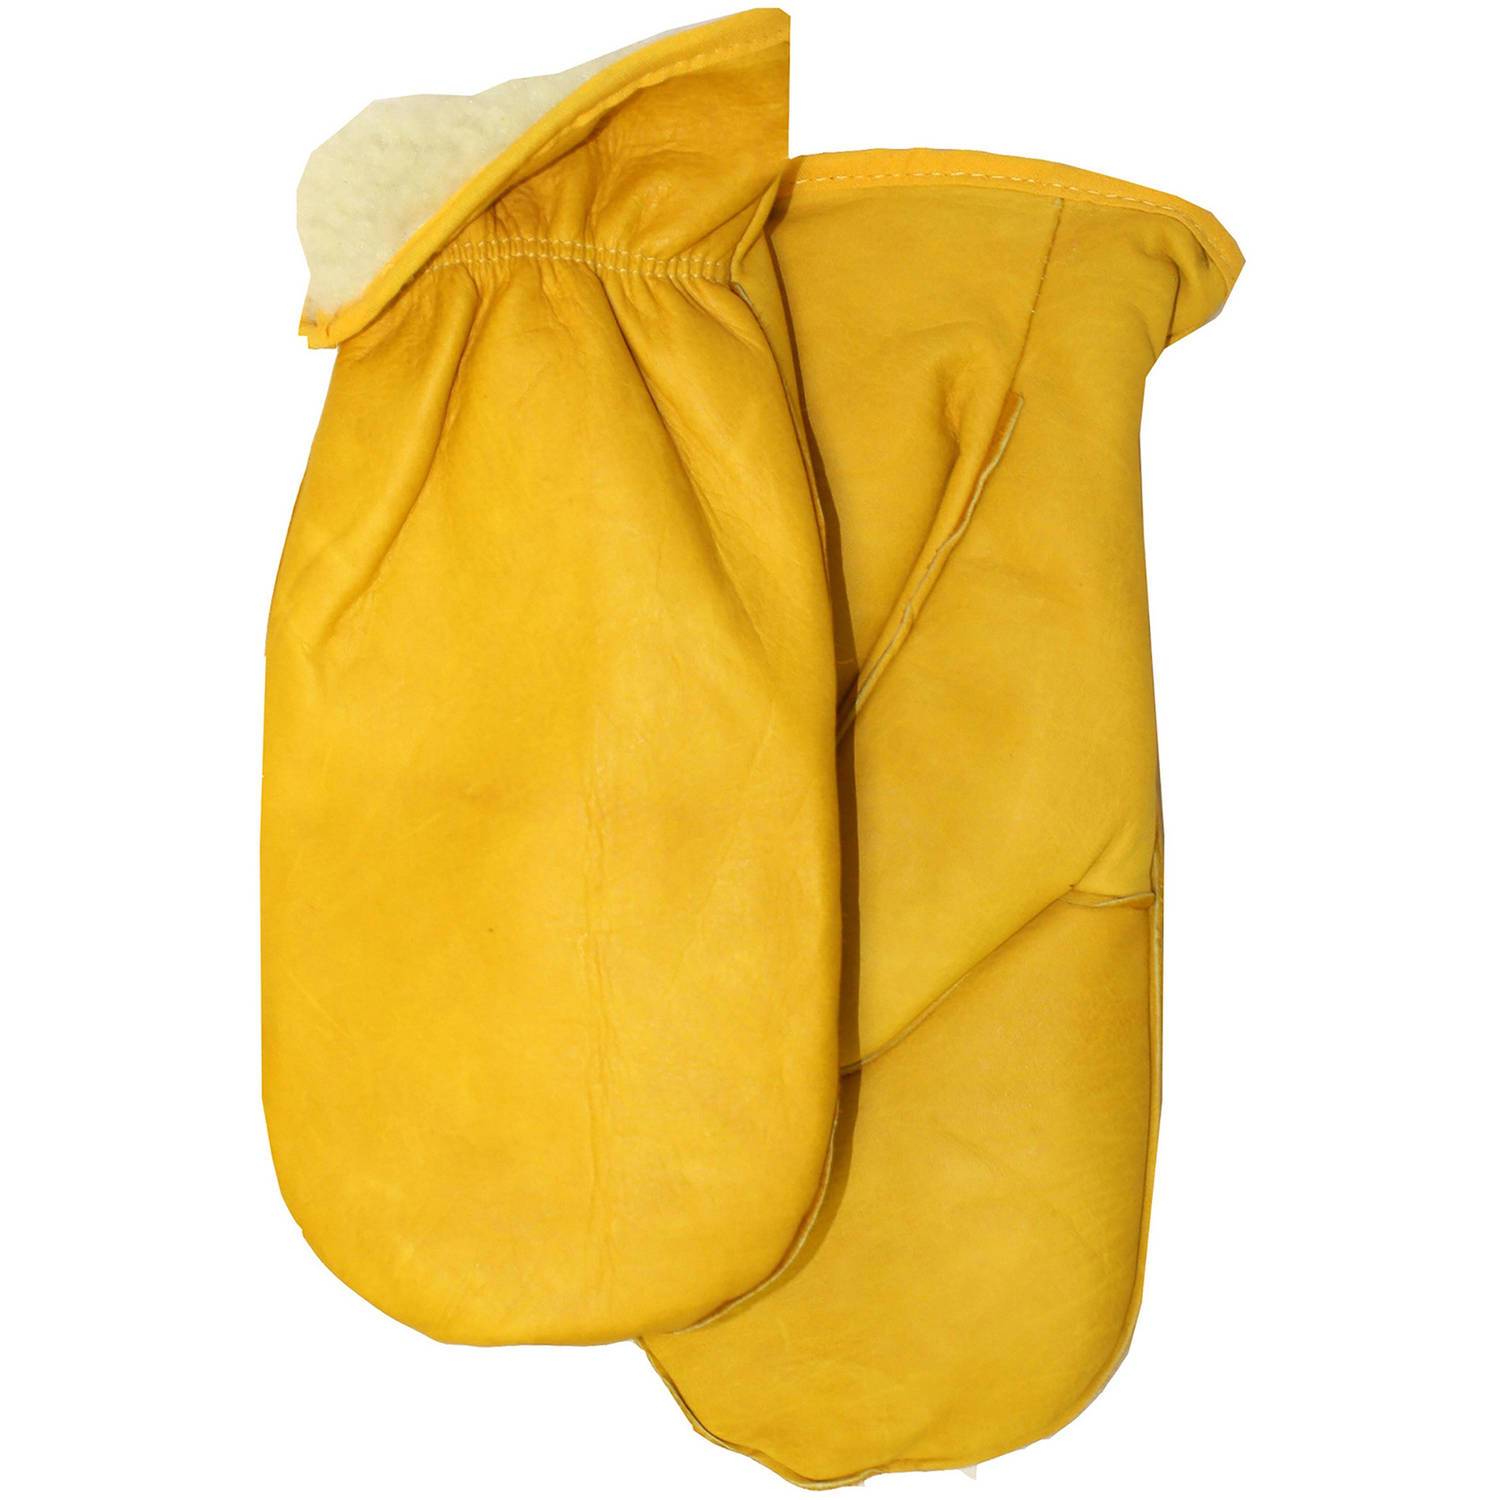 Midwest Glove 9200PL-9 Large Pile Lined Leather Chopper Mitt